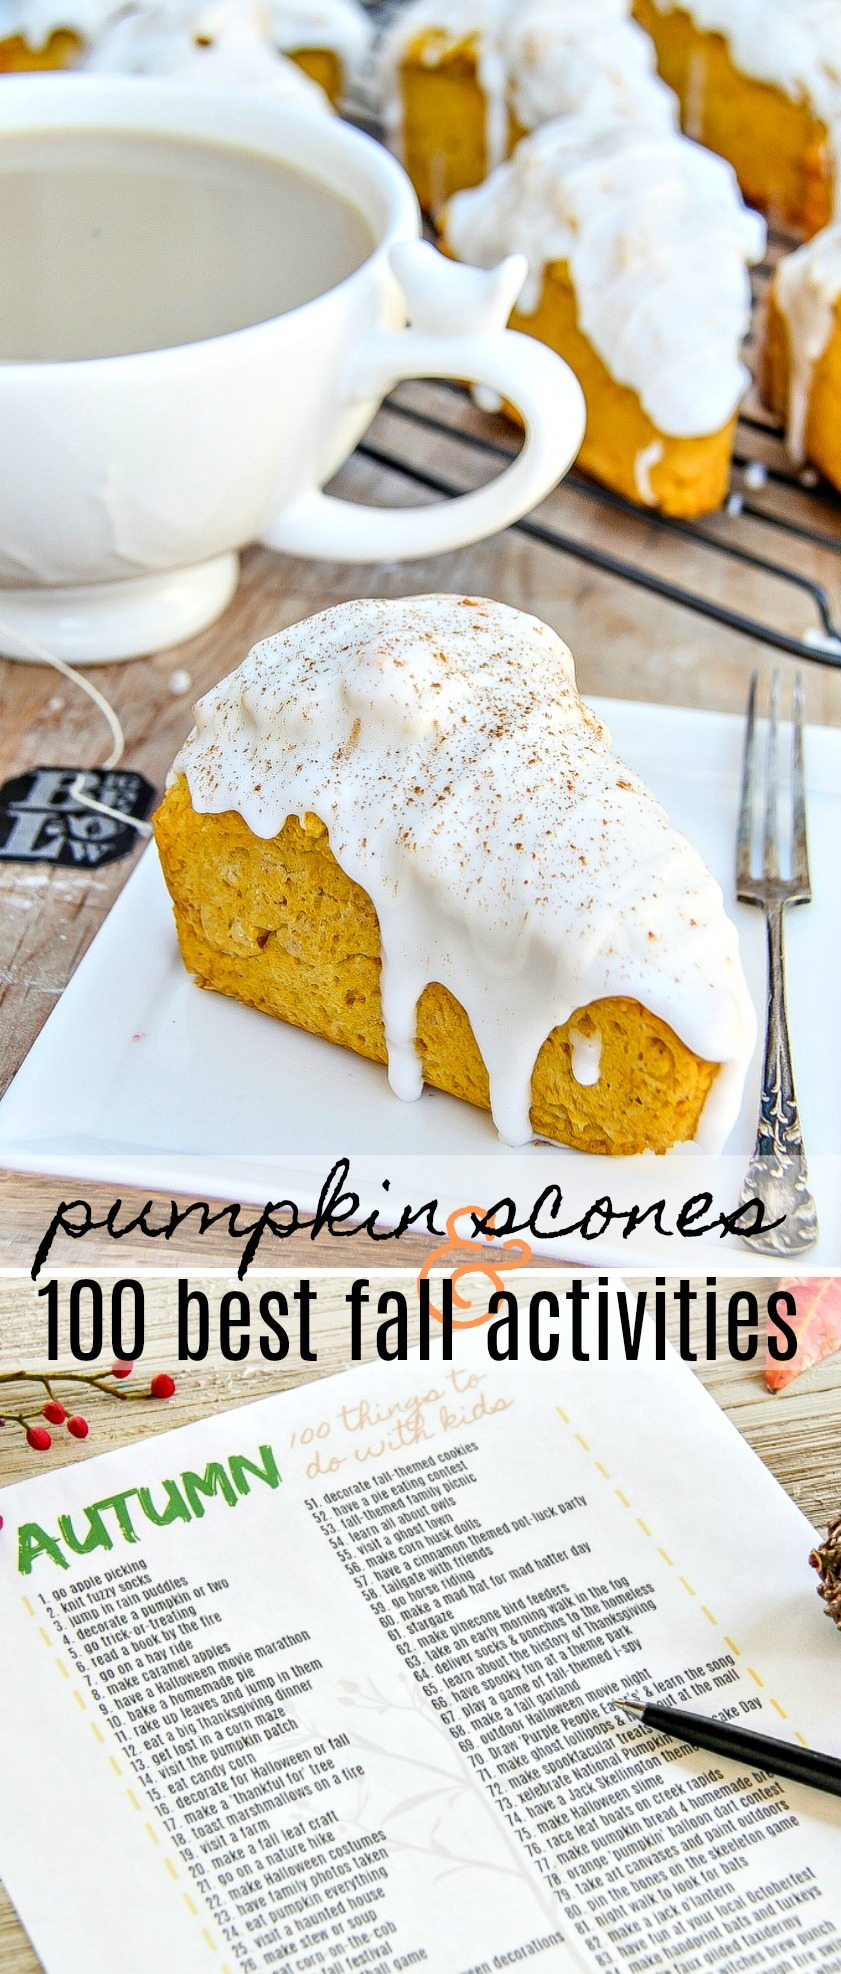 pumpkin scones and 100 things to do with kids this fall Pinterest image